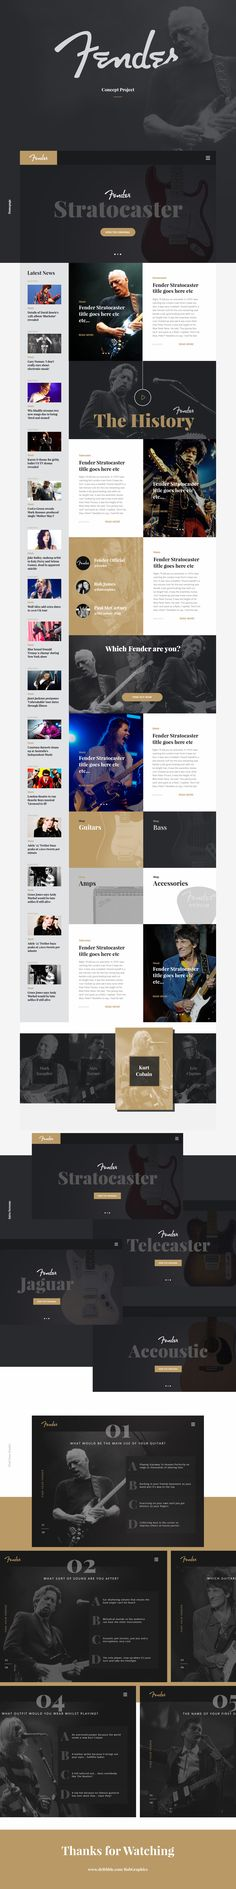 Website design from http://keithhoffart.weebly.com/contact.html Fender Concept Page by Rob James